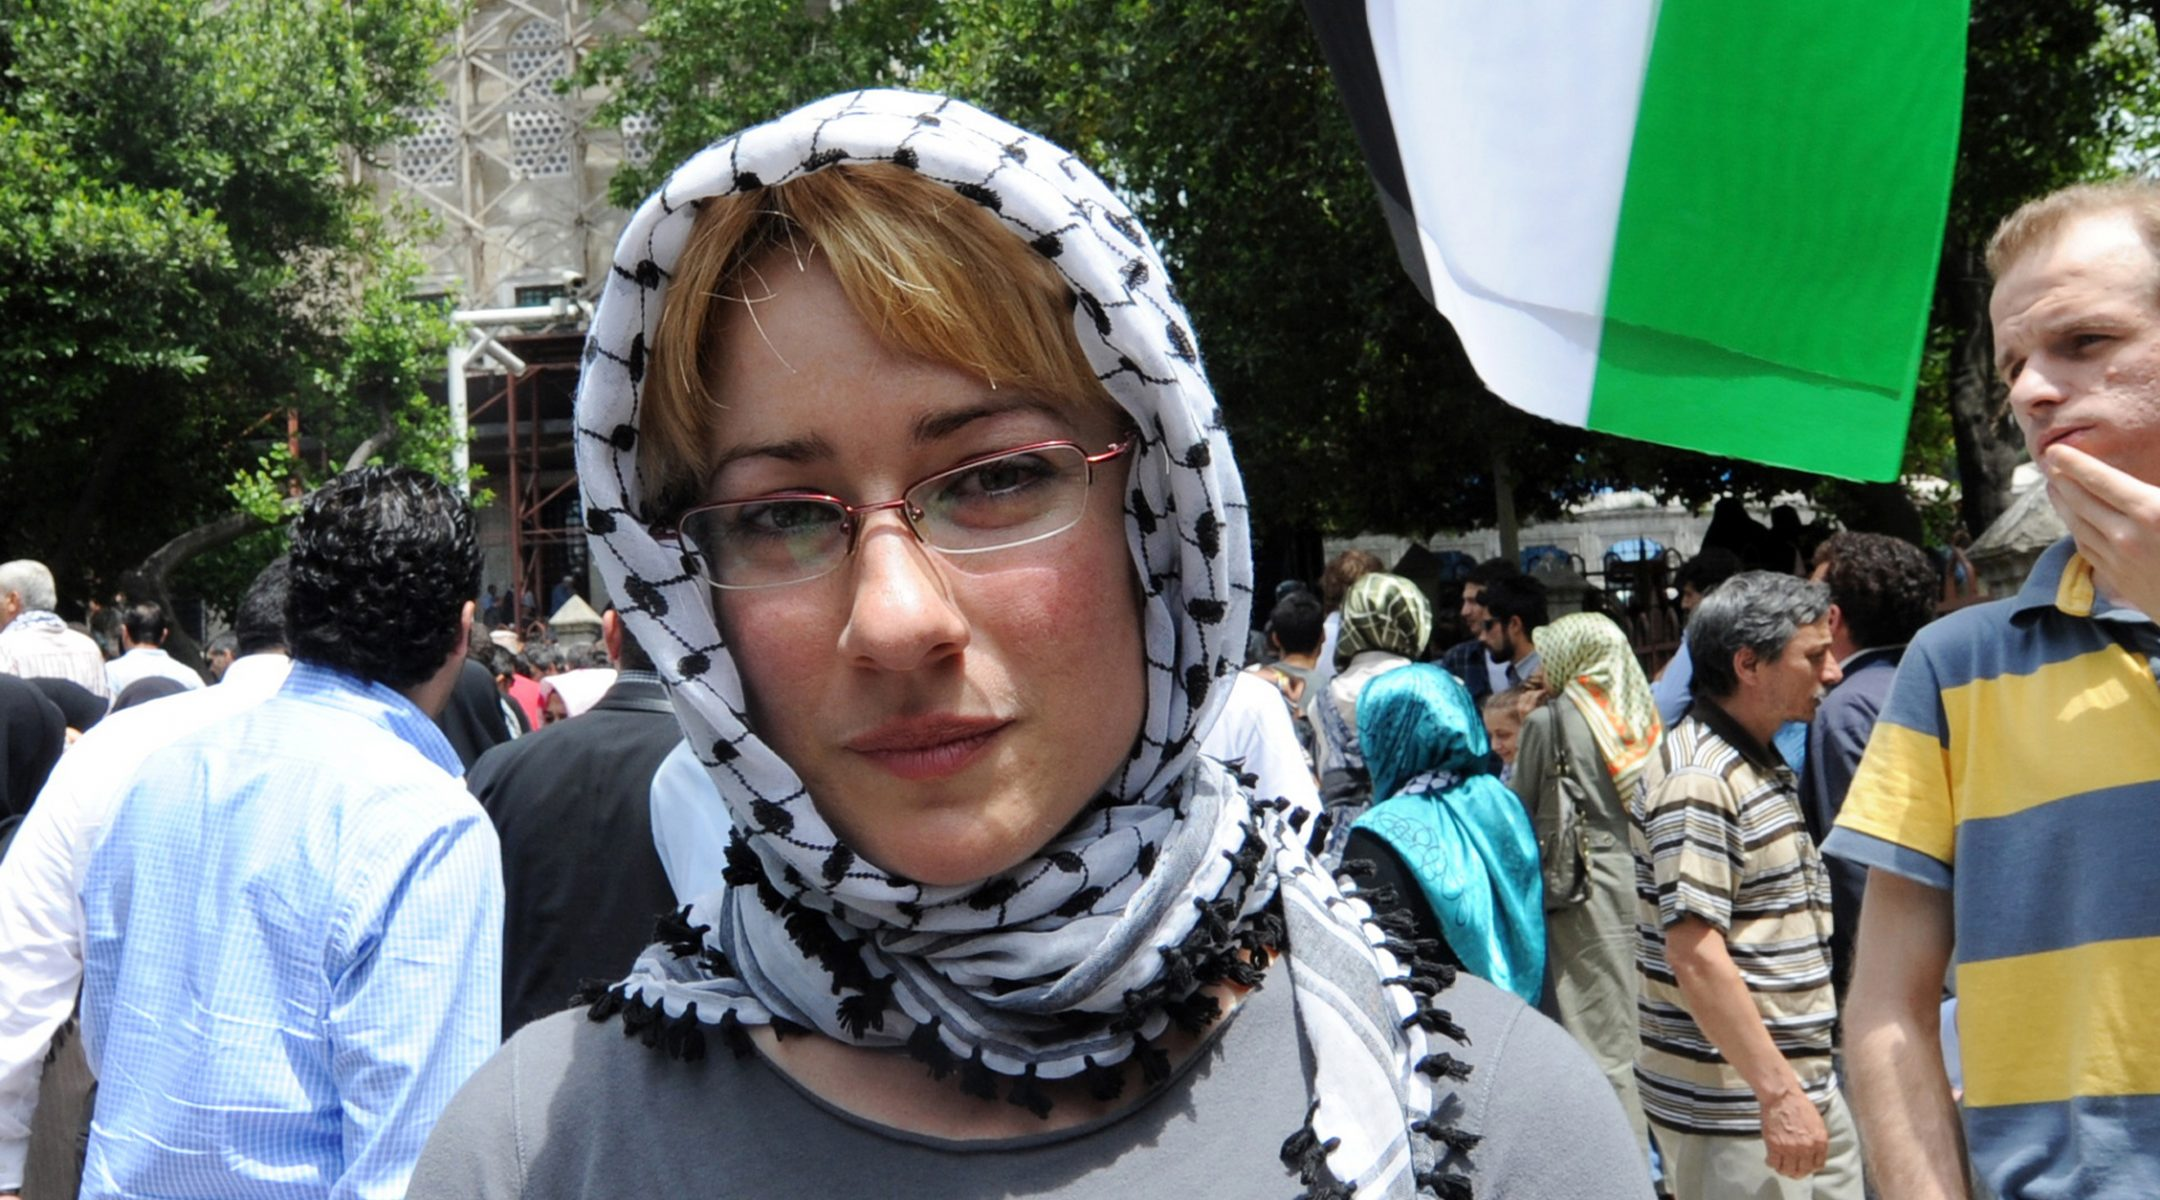 Ewa Jasiewicz attends a protest rally against Israel in Istanbul, Turkey on June 3, 2010. (Bulent Kilic/AFP via Getty Images)